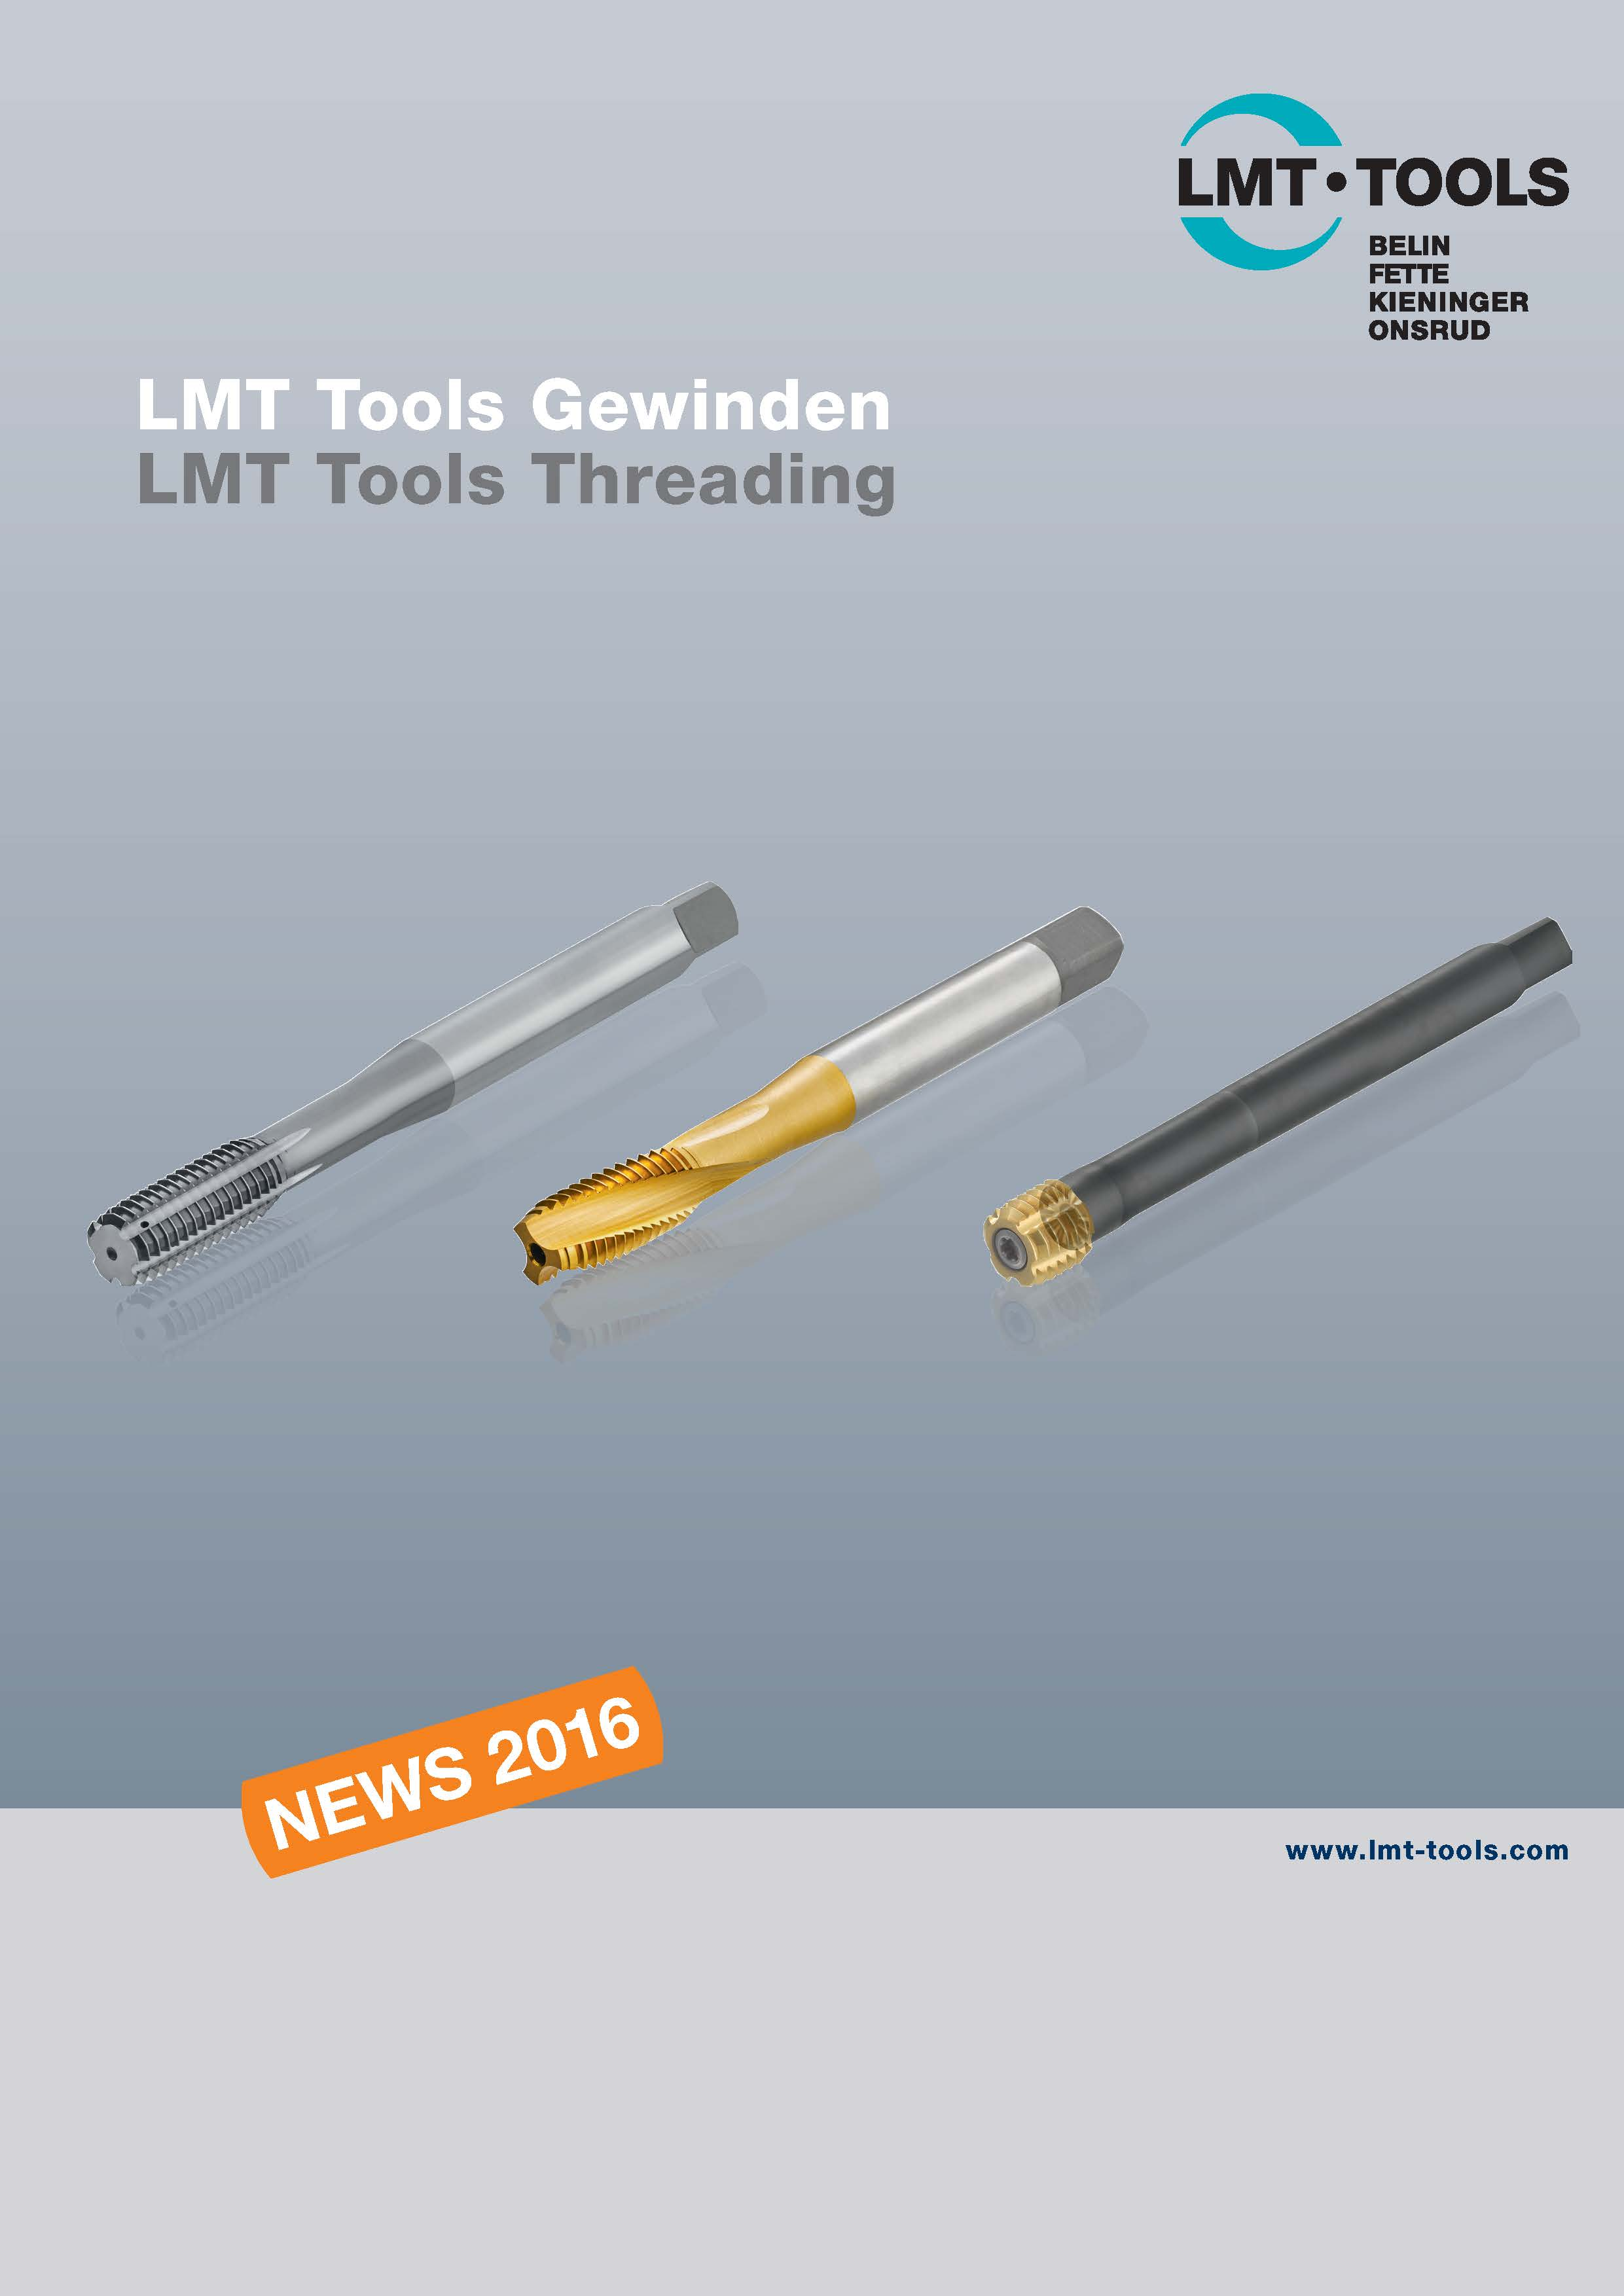 LMT Tools Threading - News 2016